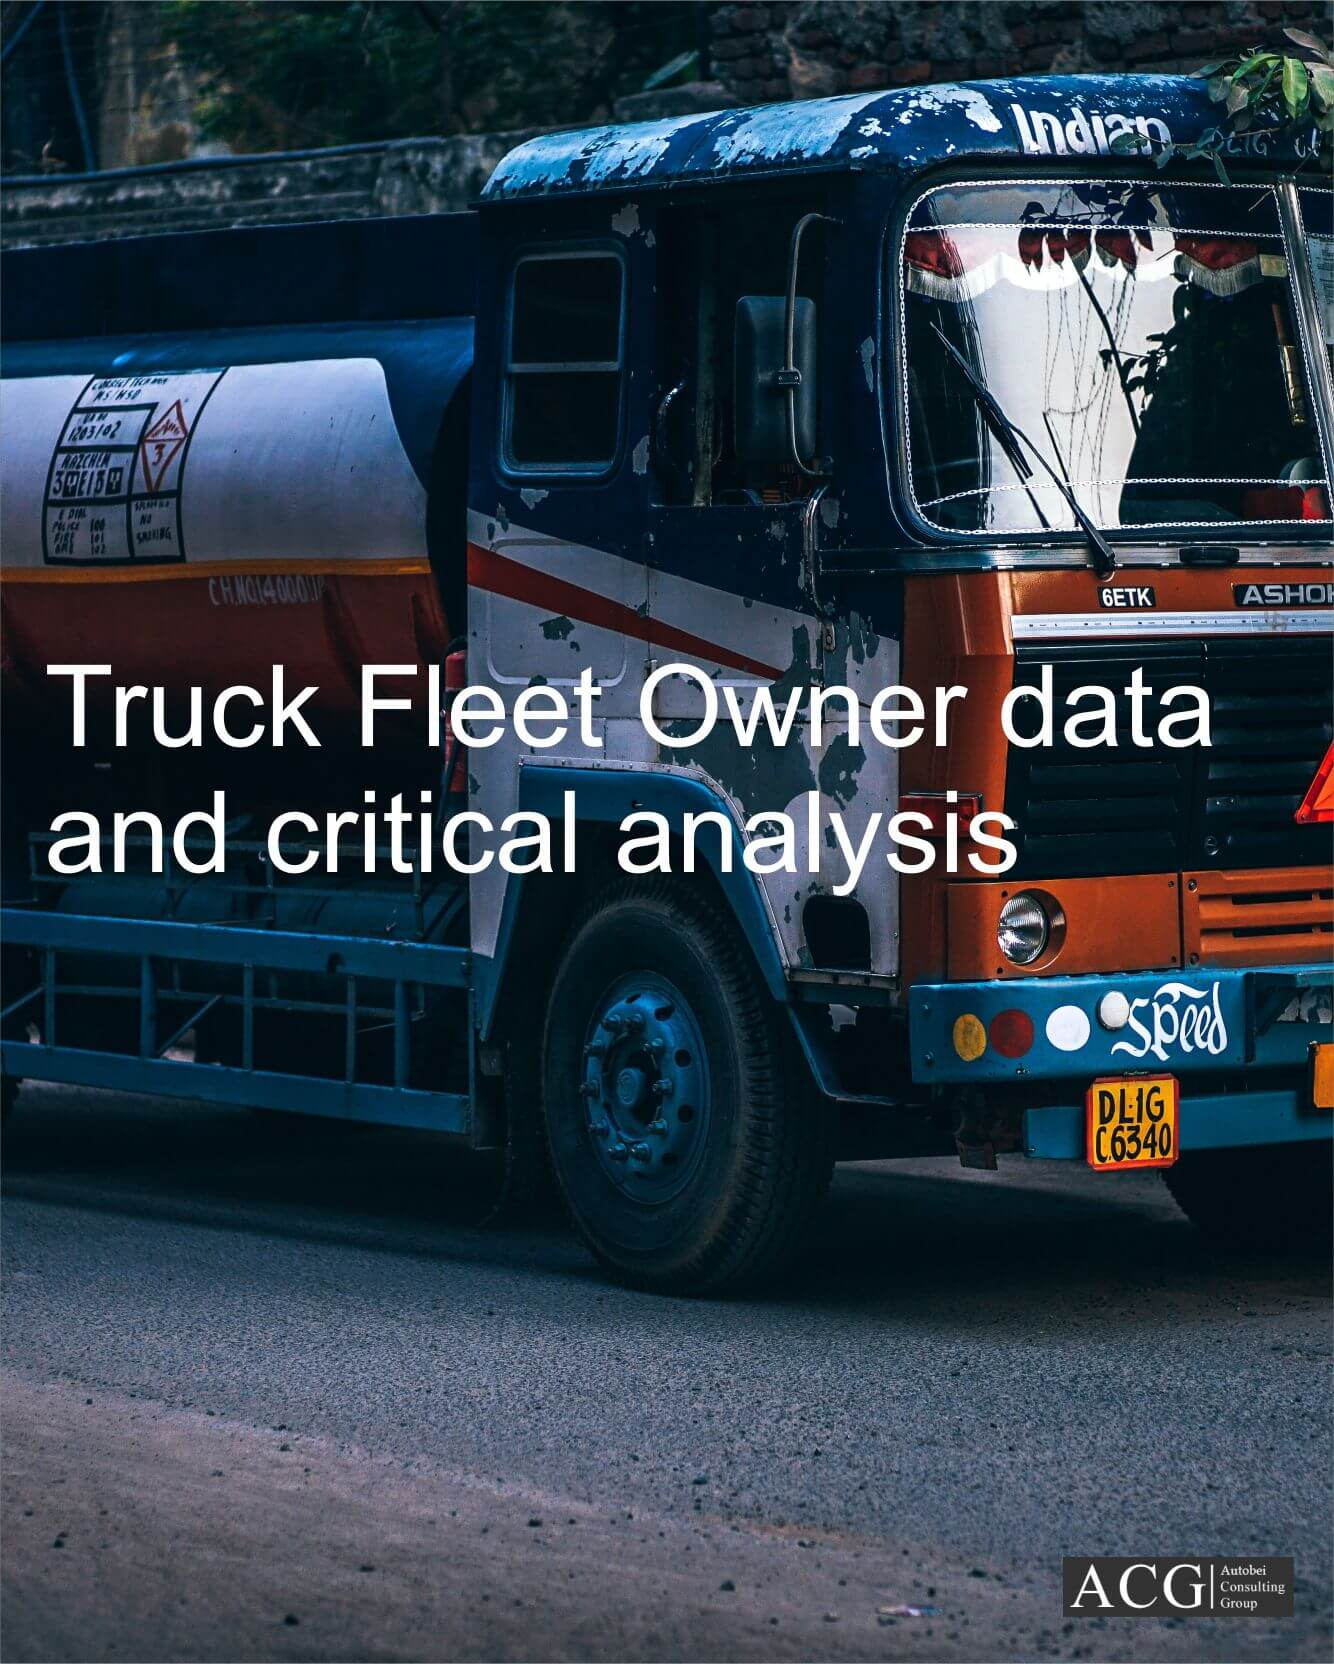 Truck Fleet Owner data and critical analysis